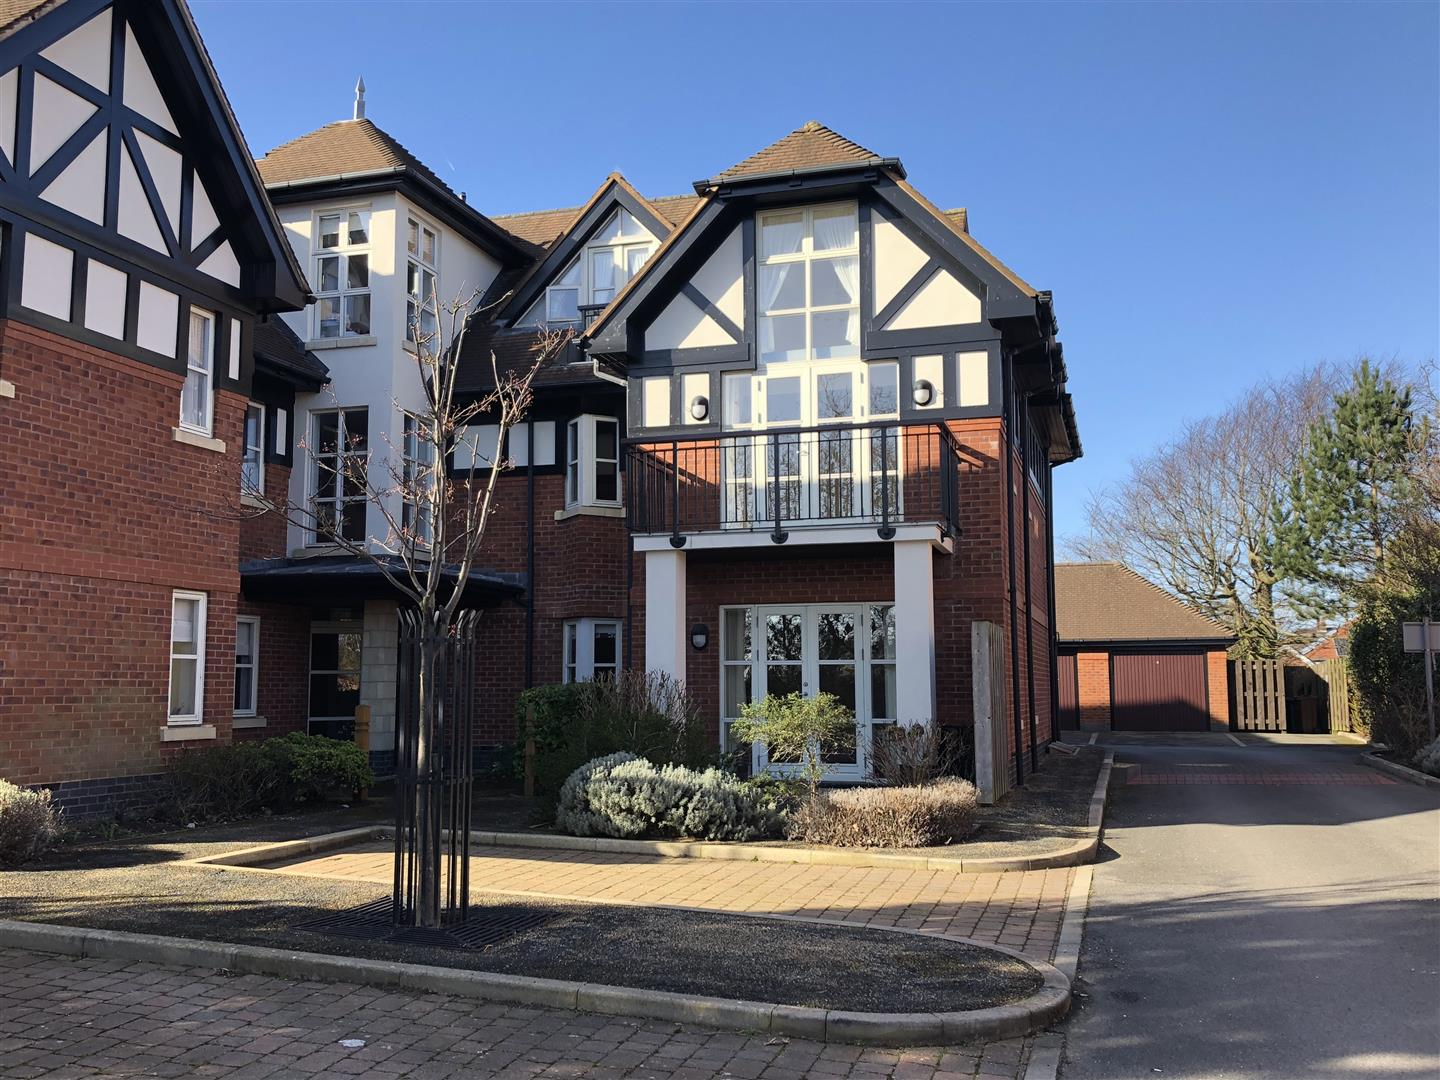 3 Bedrooms Apartment Flat for sale in The Royals, Links Gate, Lytham St. Annes